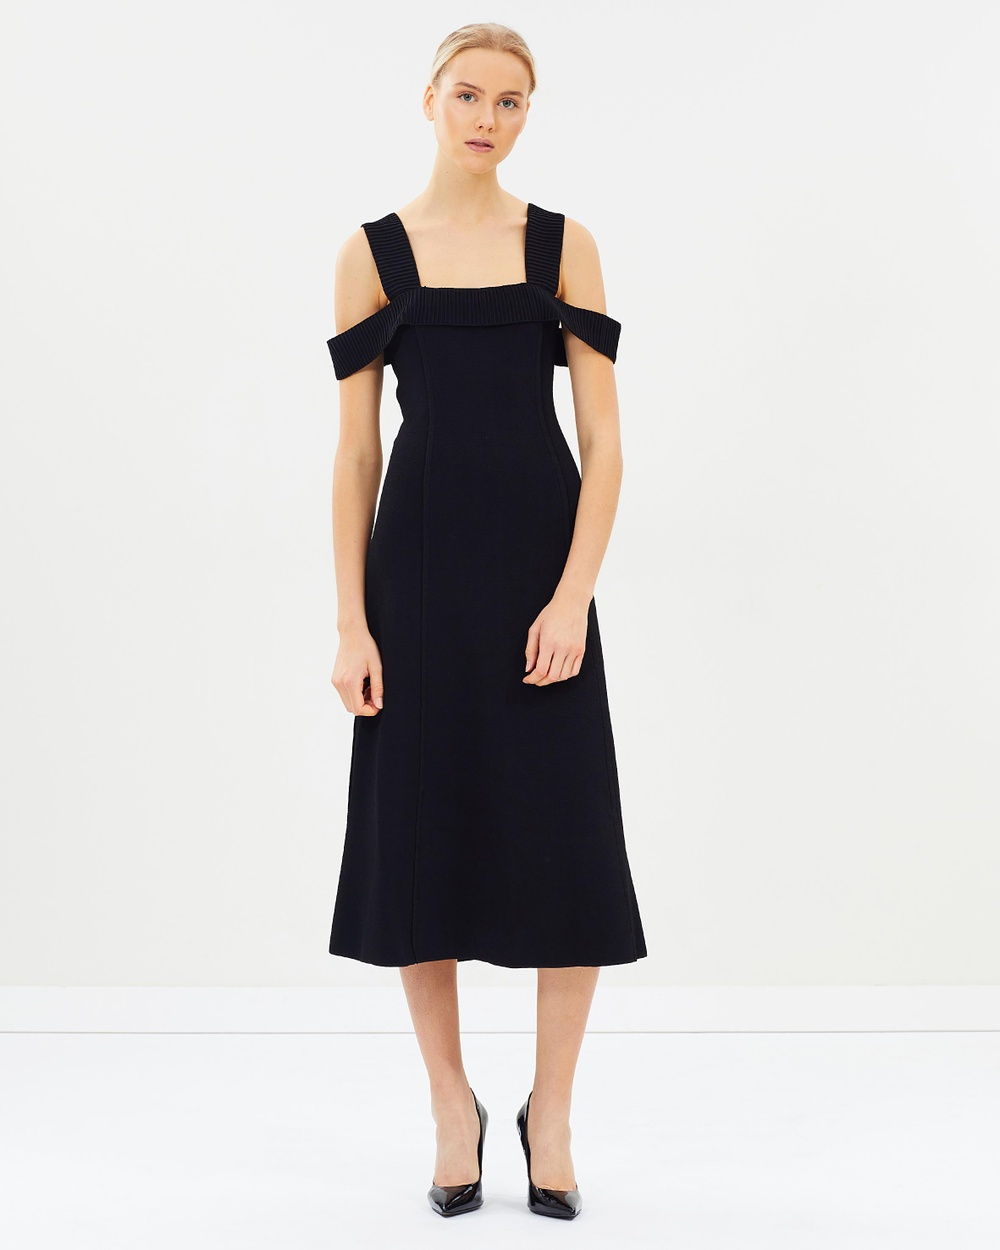 CAMILLA AND MARC Carole Fit and Flare Midi Dress Dresses Black Carole Fit and Flare Midi Dress